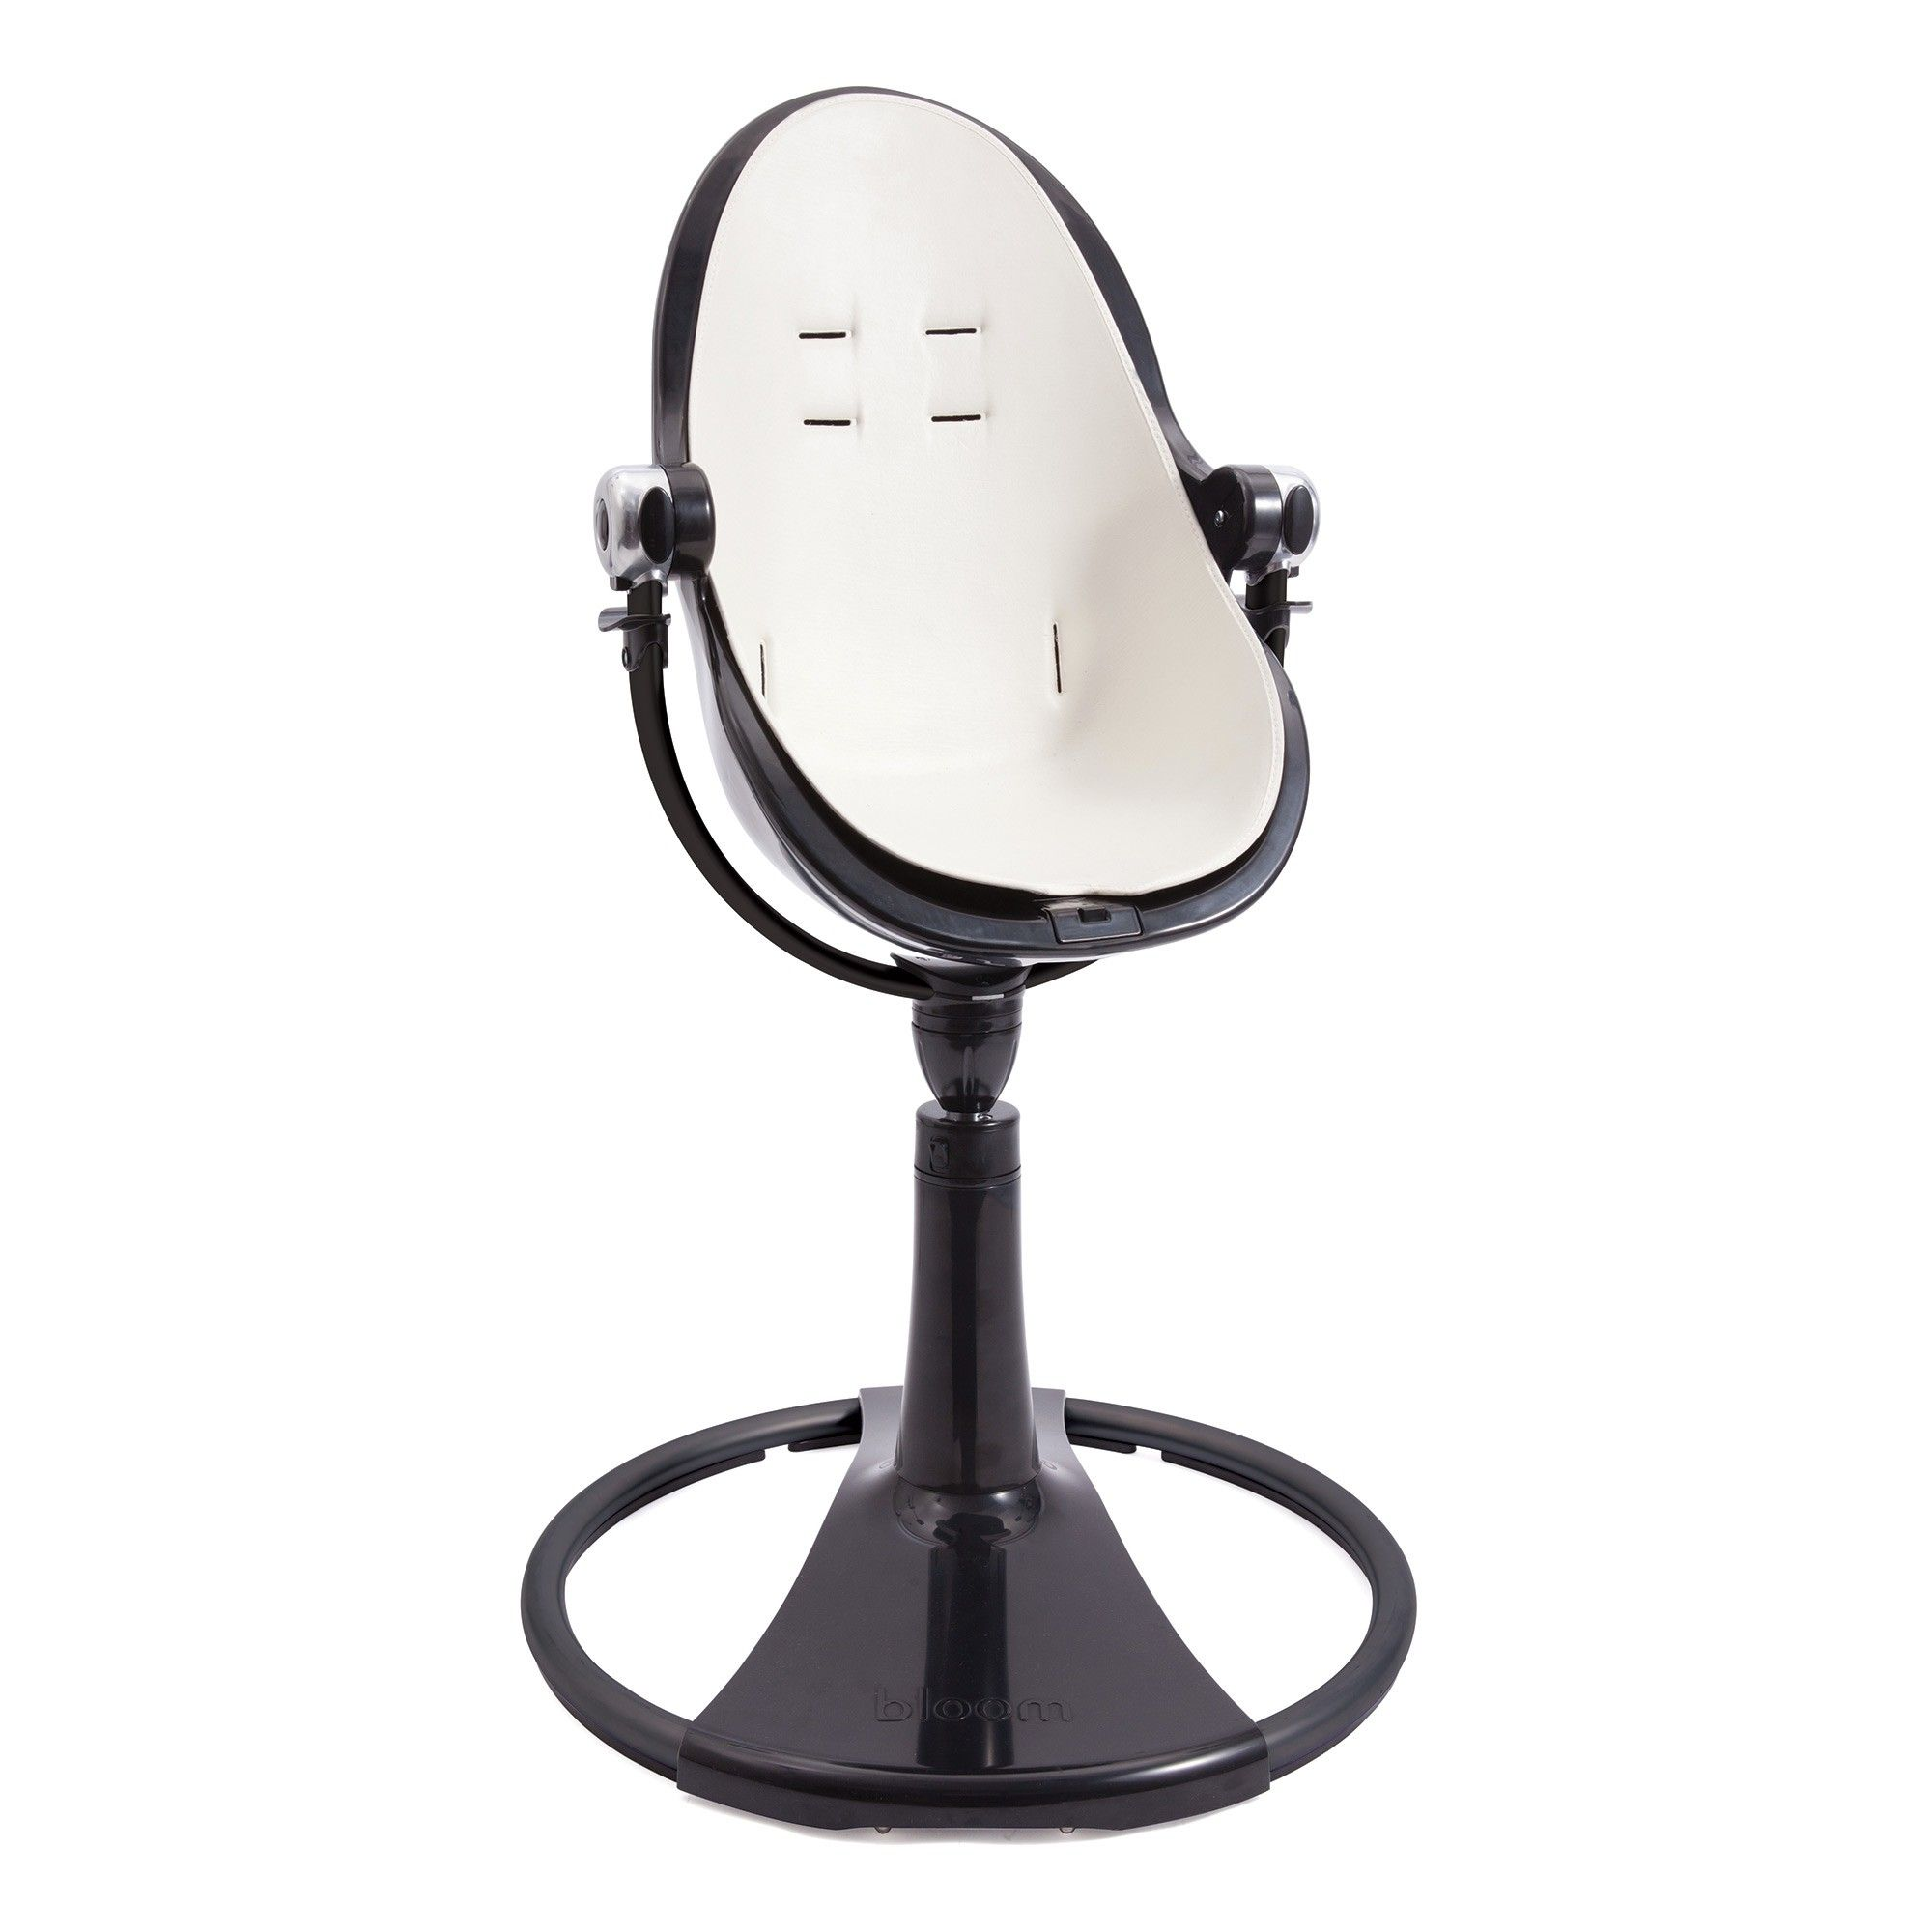 Bloom Black Fresco Chrome Baby High Chair Coconut White leather